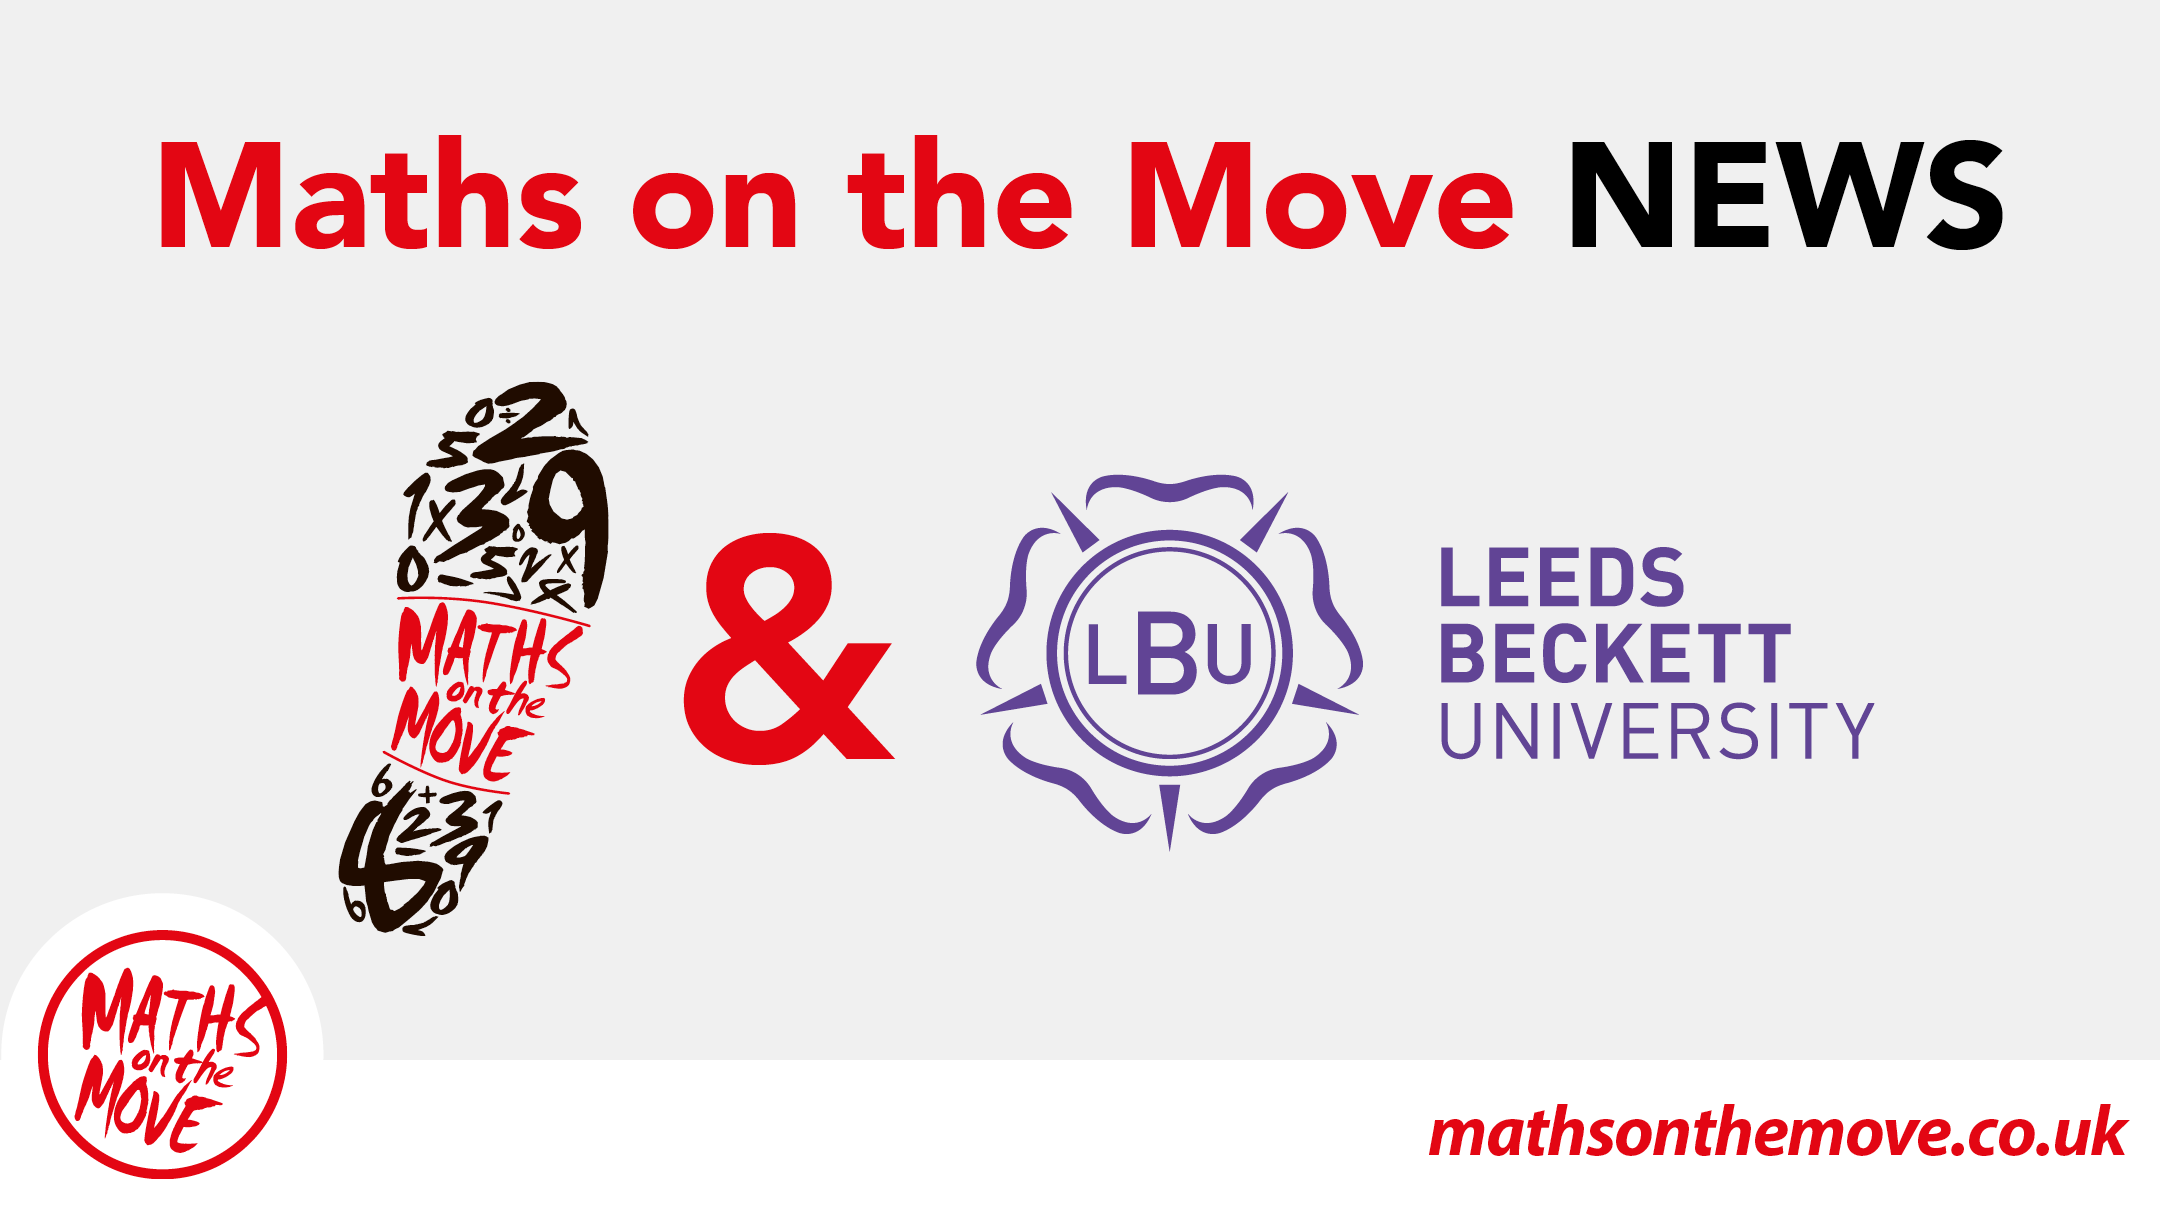 title reads Maths on the Move News below which is the maths on the move logo and leeds beckett university logo.